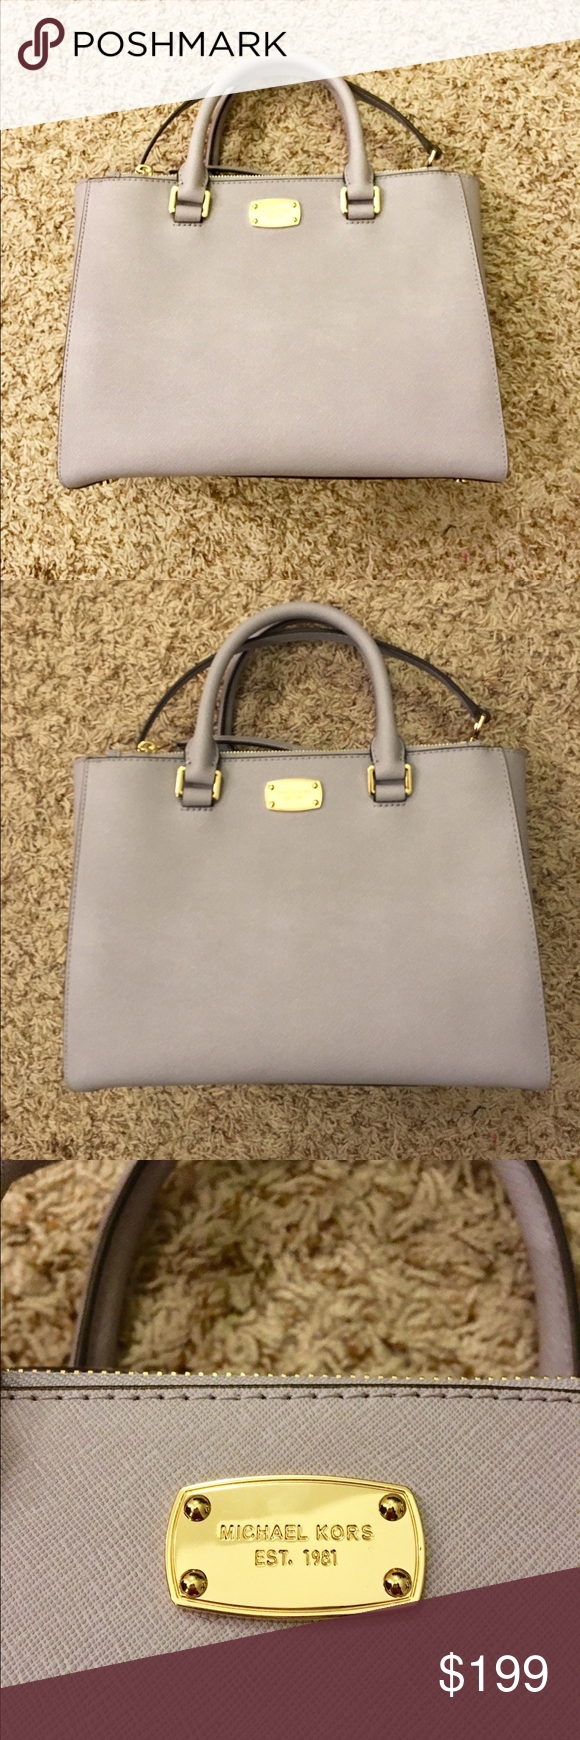 Michael Kors Lilac Satchel Used once. Its in perfect condition Michael Kors Bags Satchels